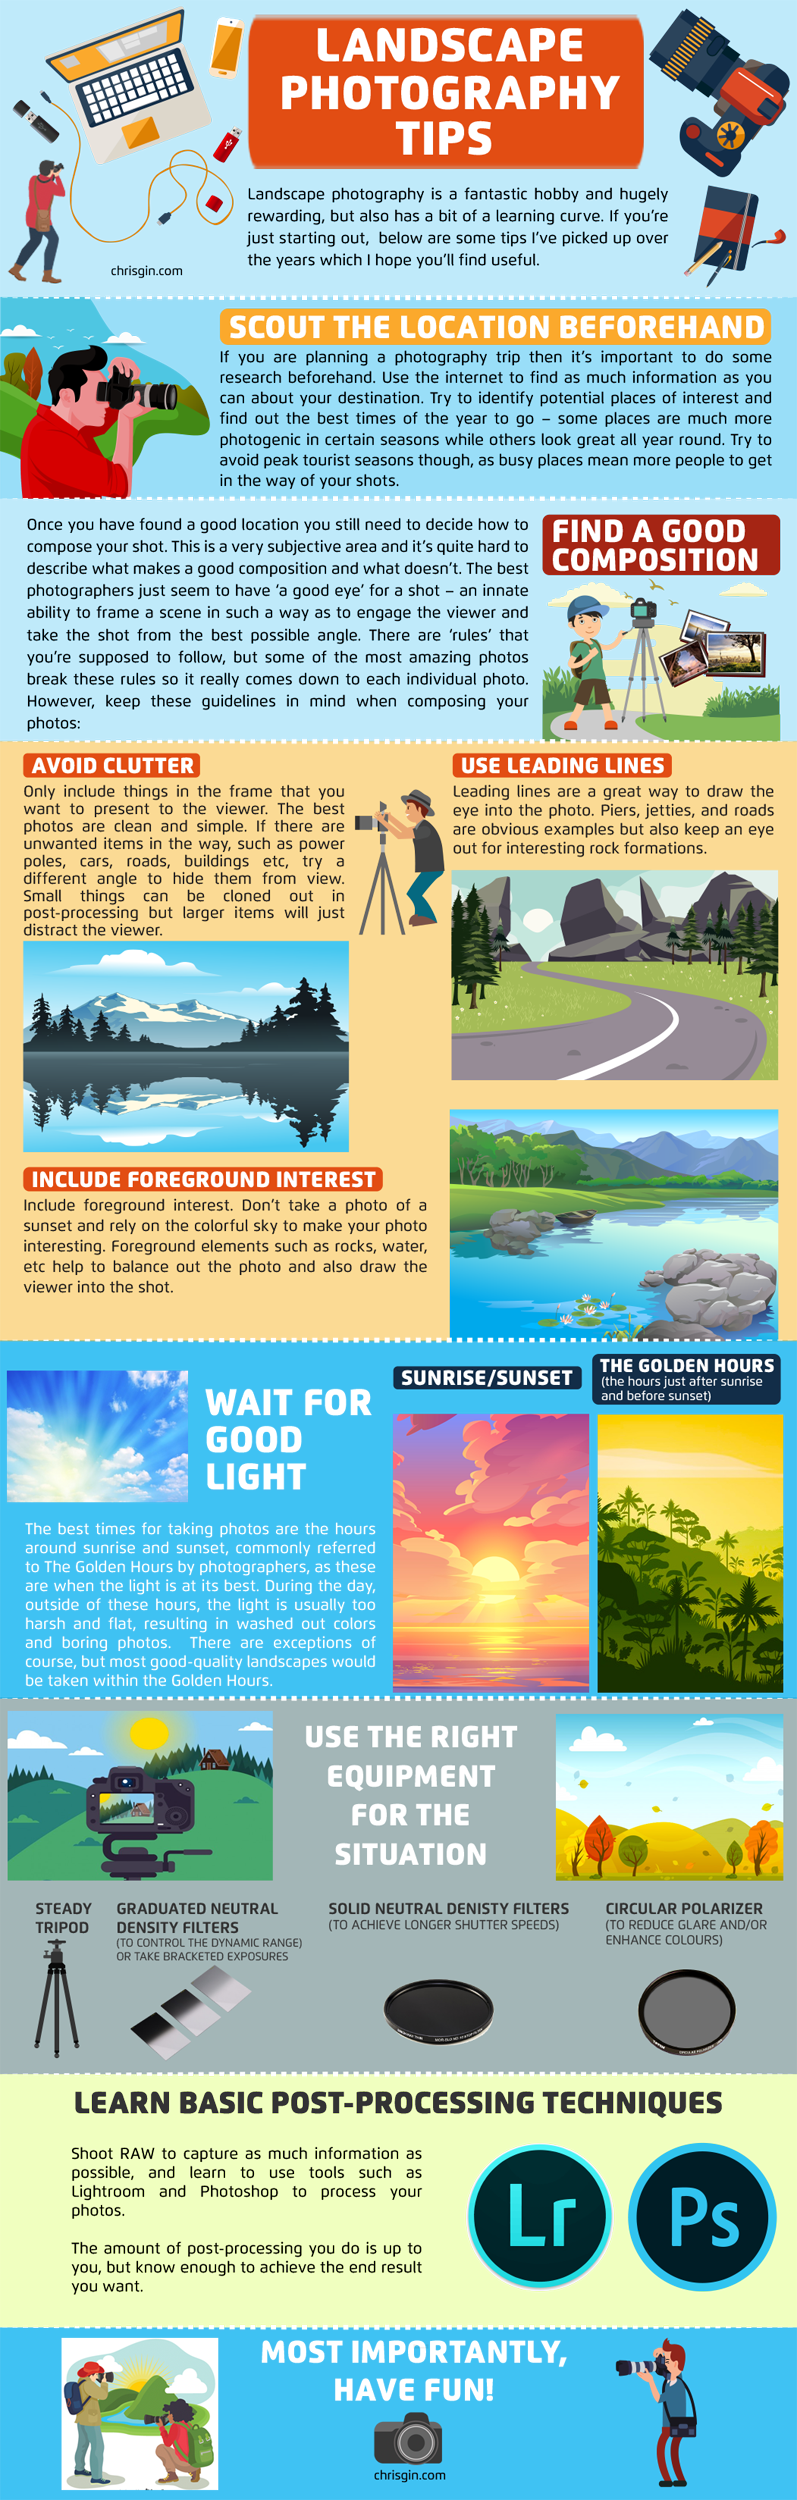 Landscape Photography Tips Infographic